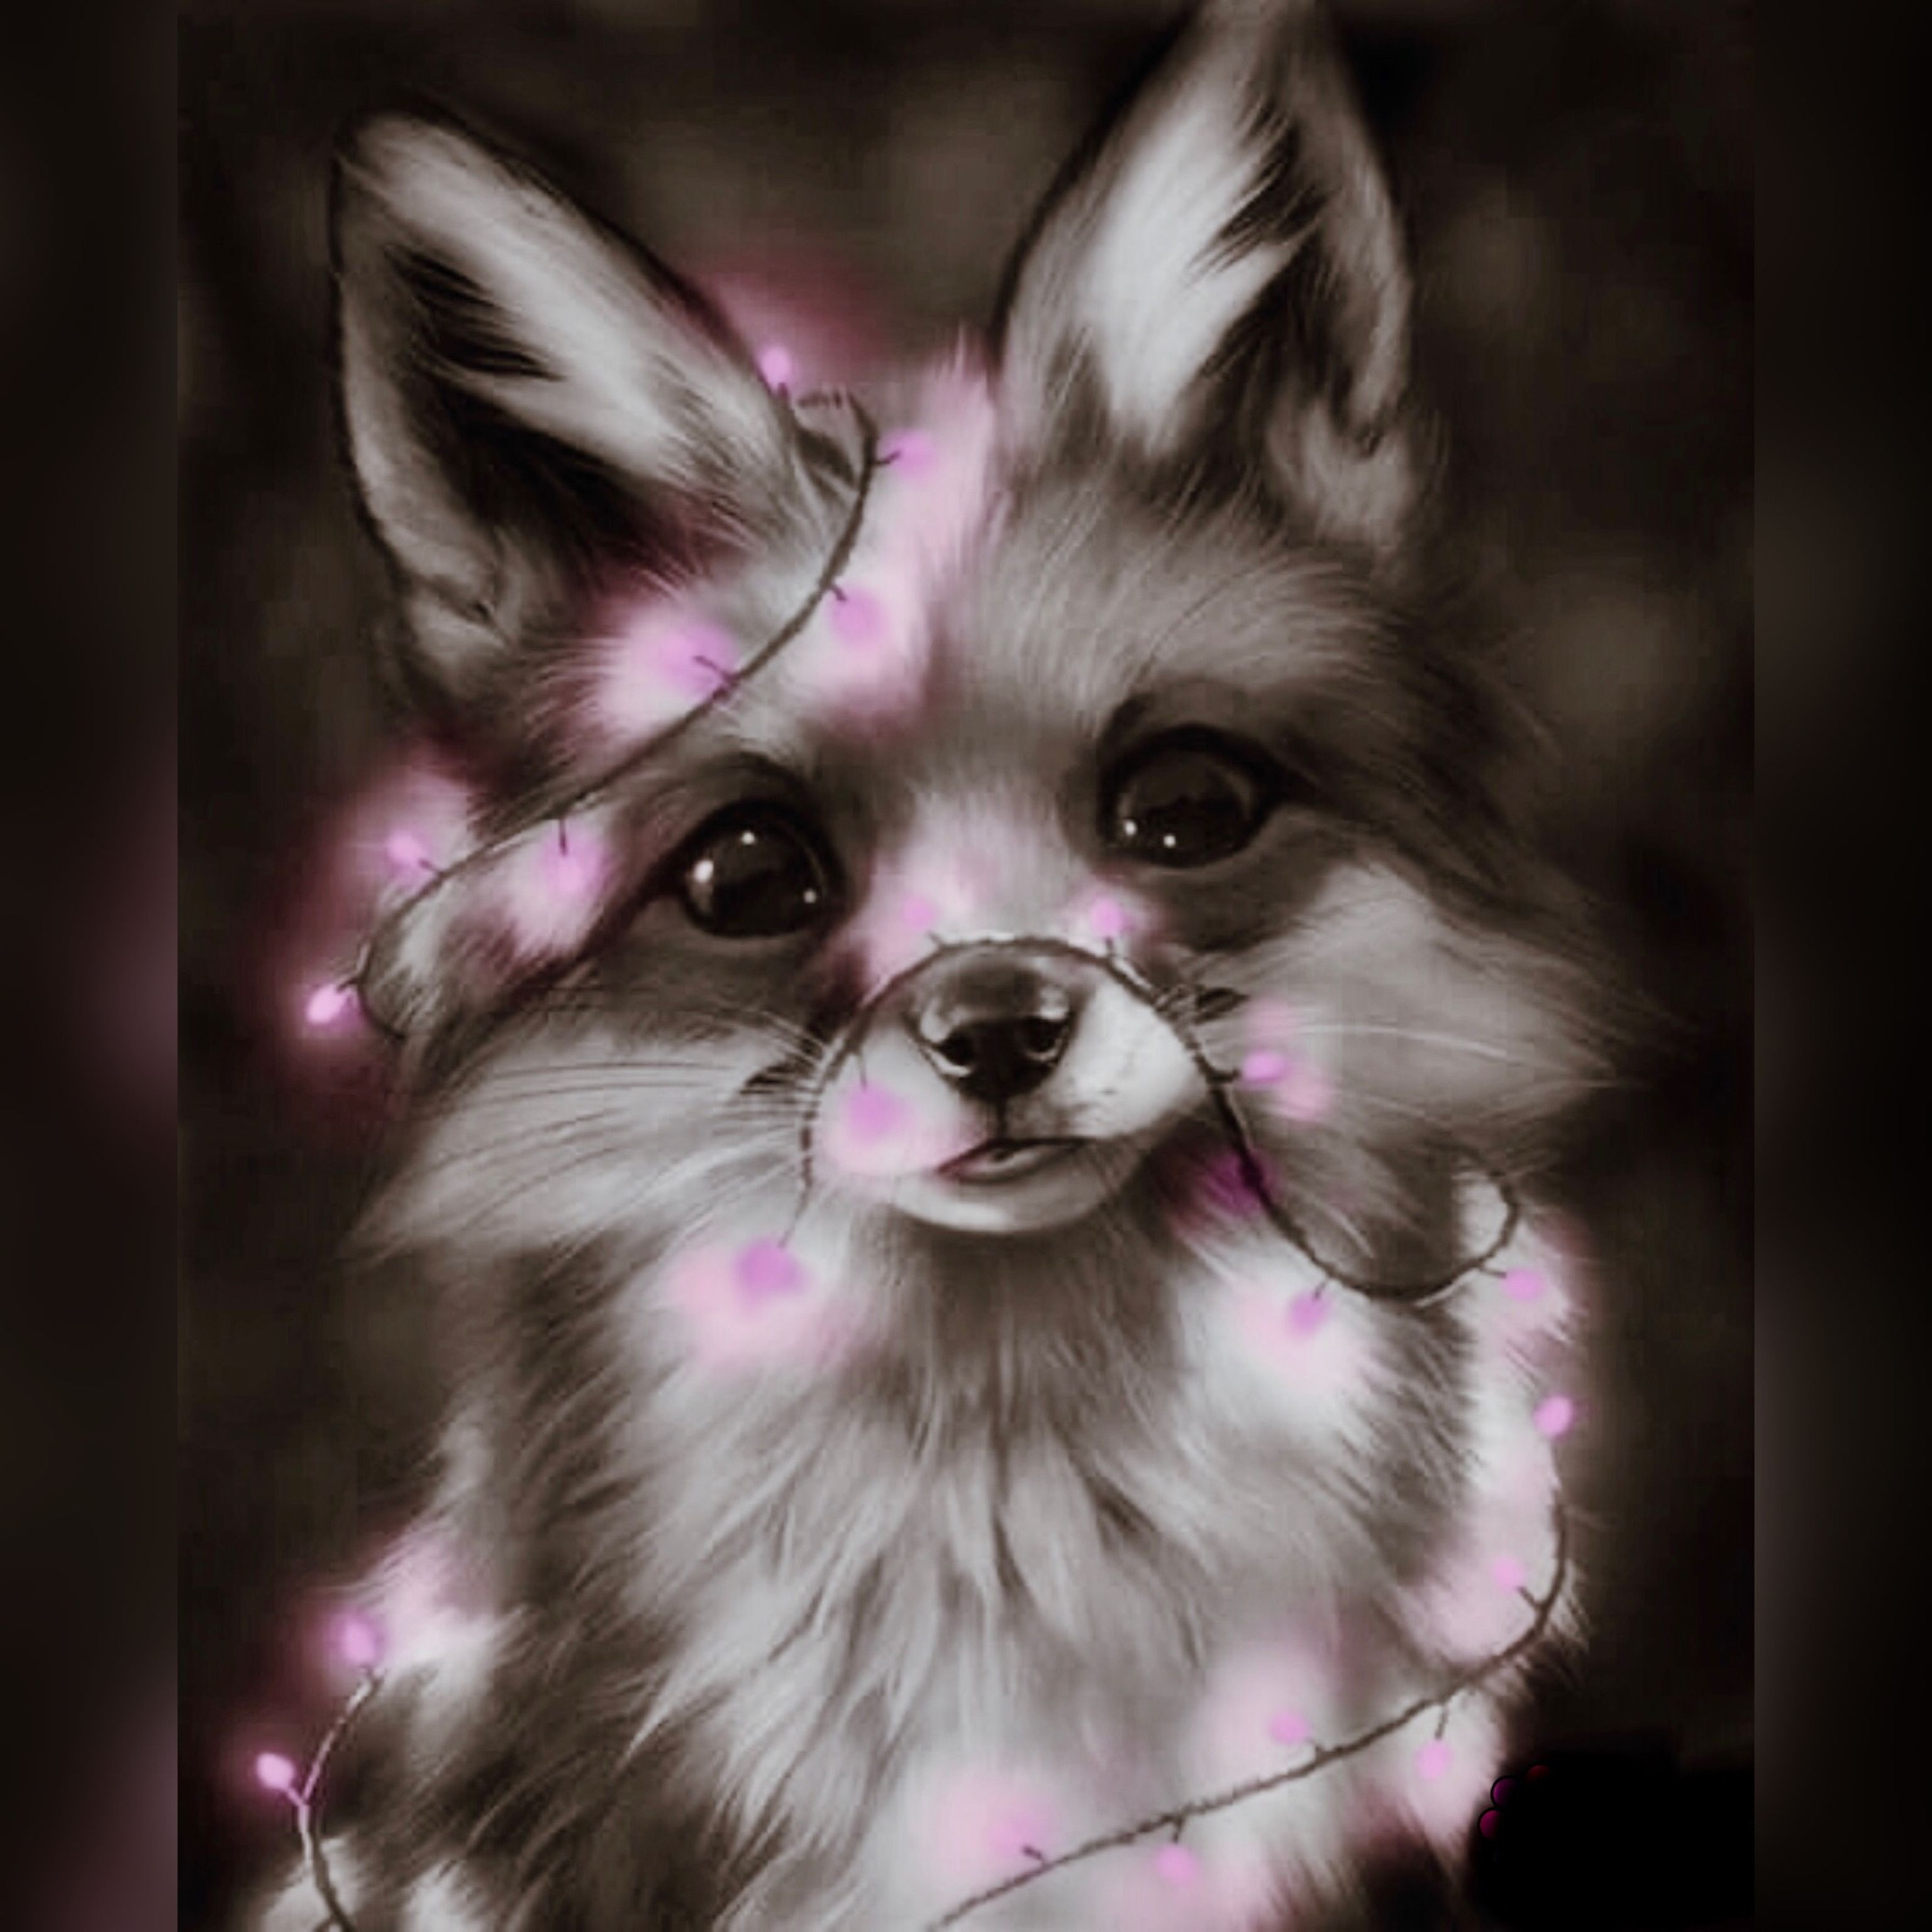 Pin By Stephanie Greholver On Foxes Cute Dog Pictures Cute Animal Drawings Kawaii Cute Fantasy Creatures